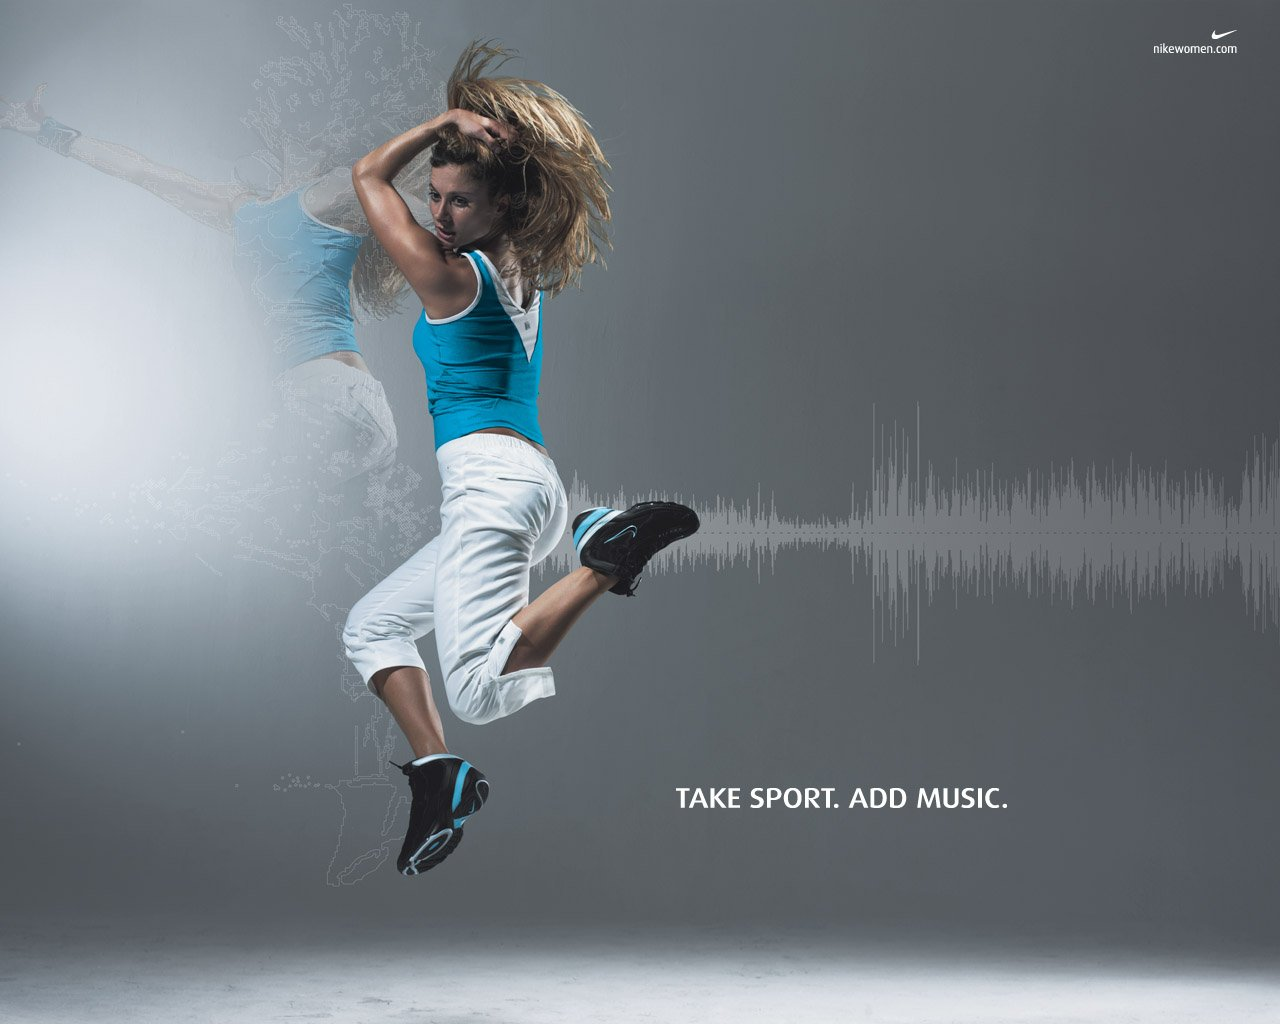 nike : images curated on kweeper